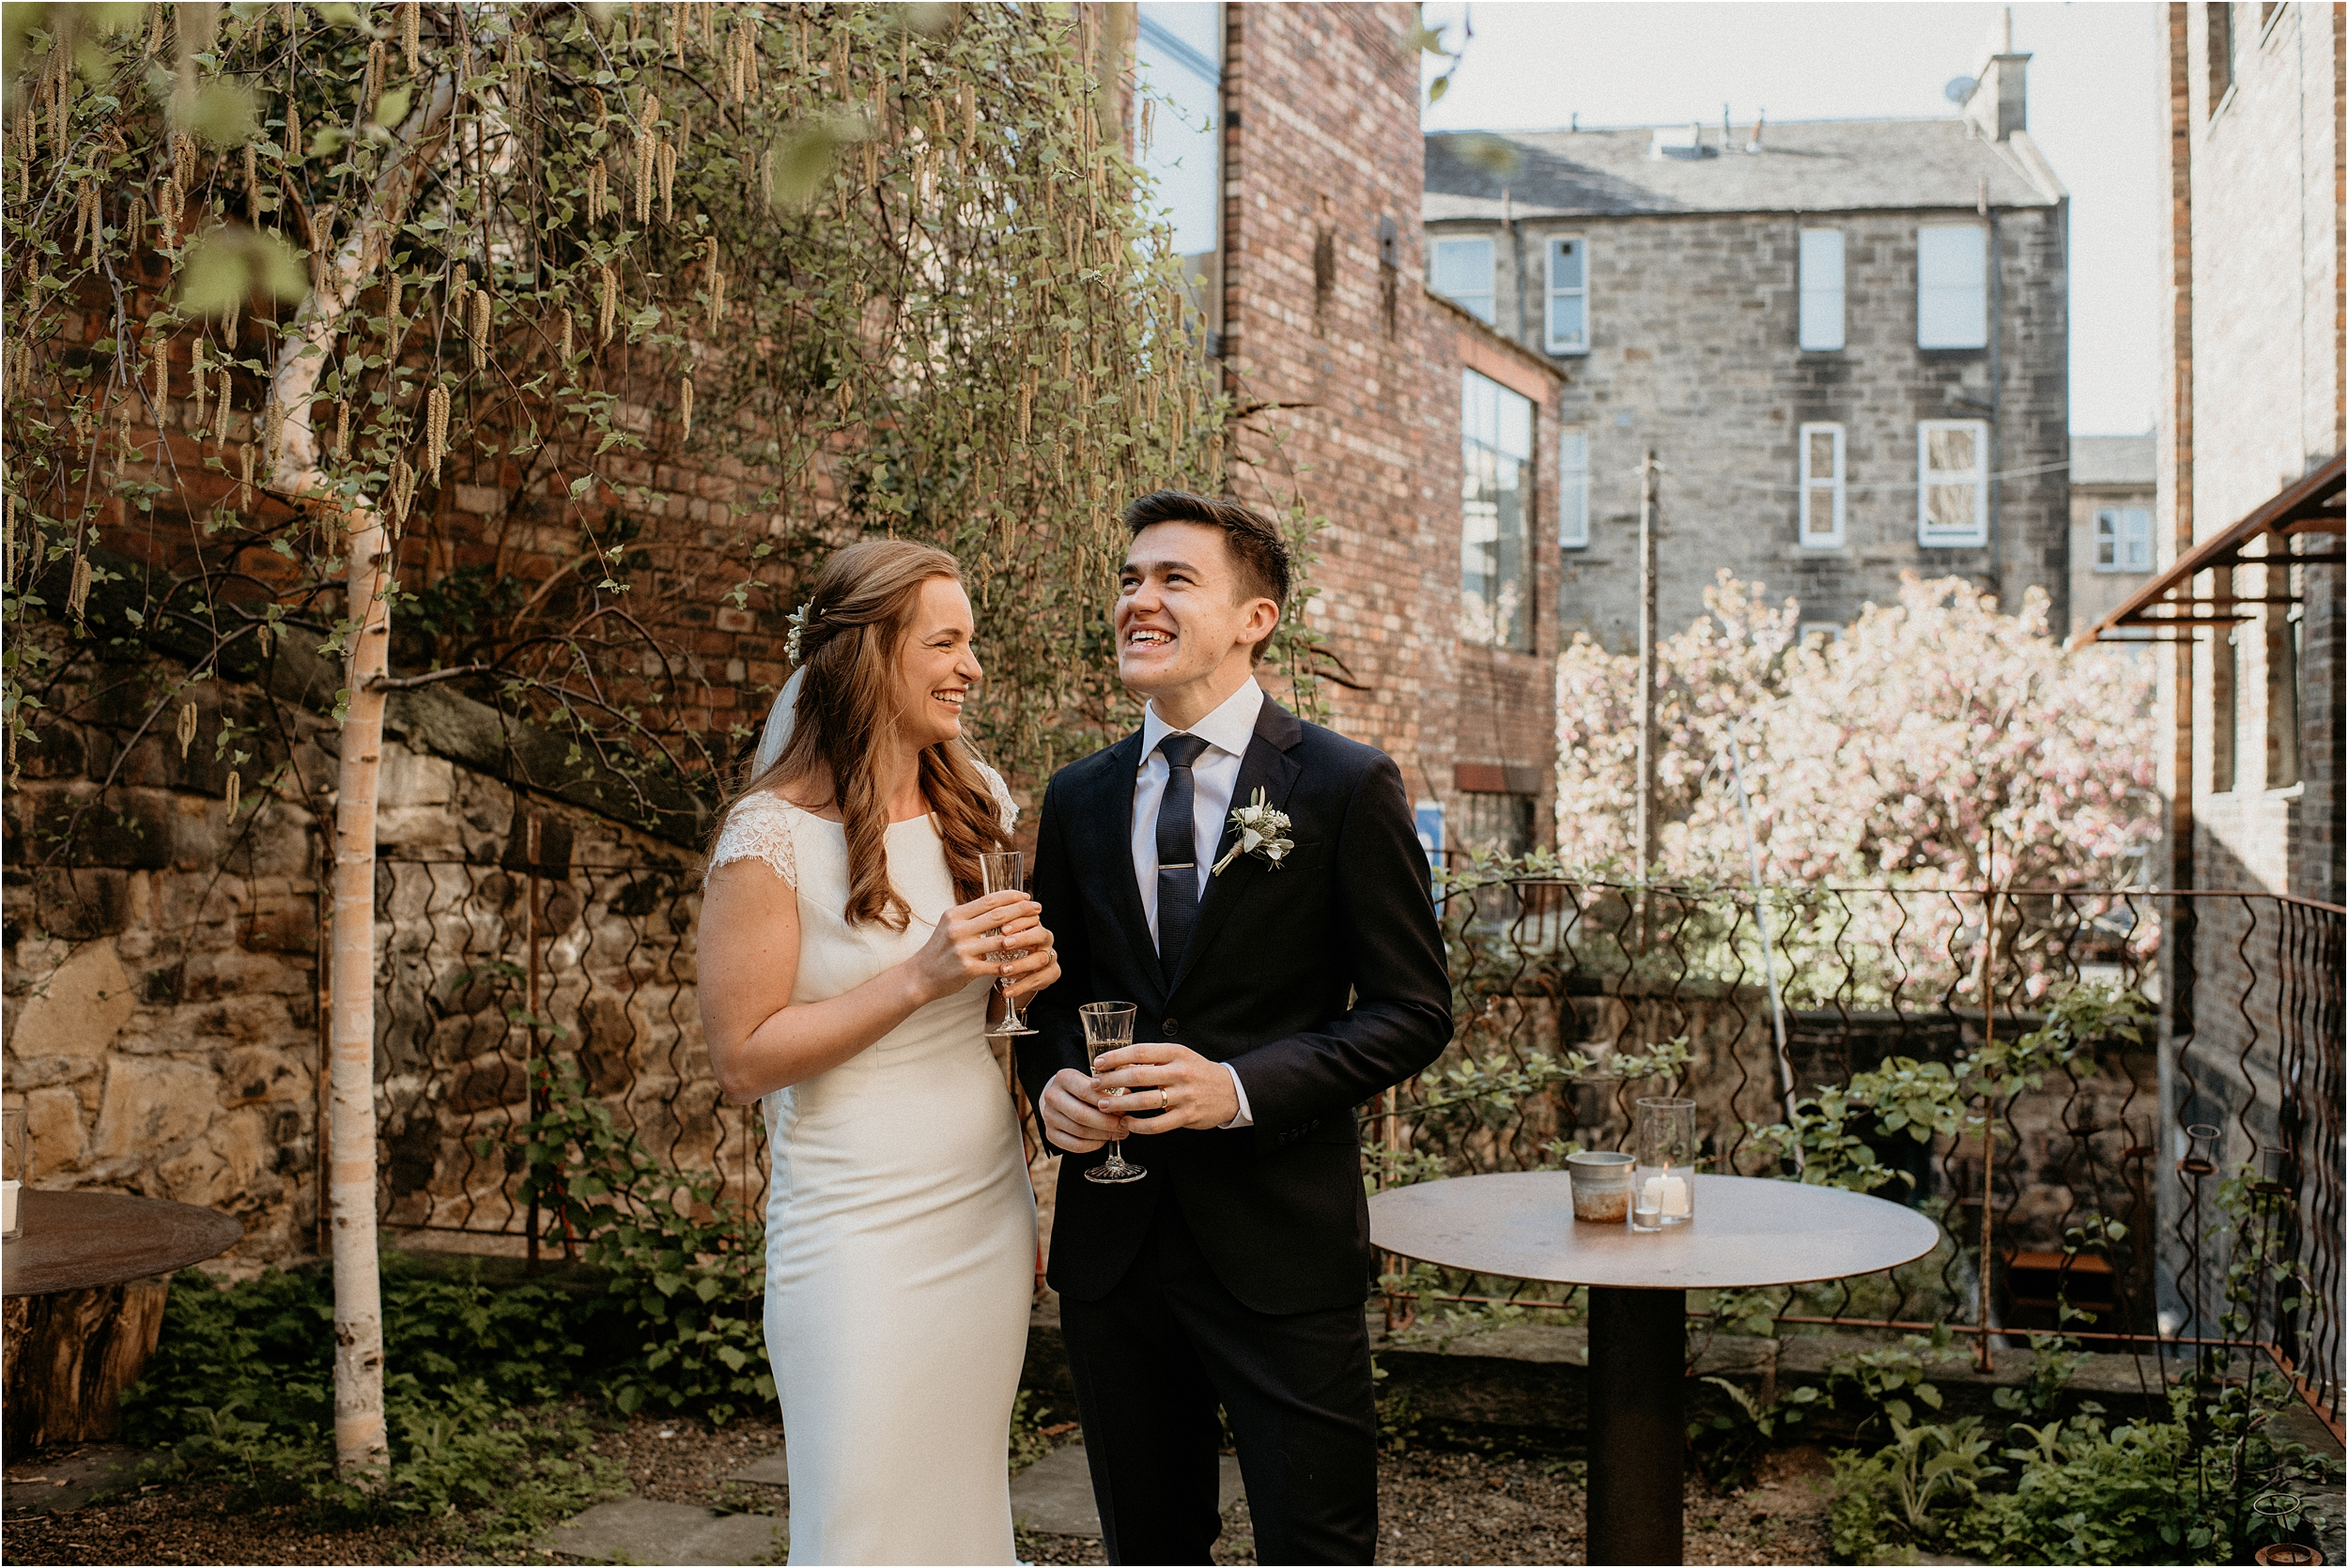 Timberyard-Edinburgh-wedding-photography__0058.jpg